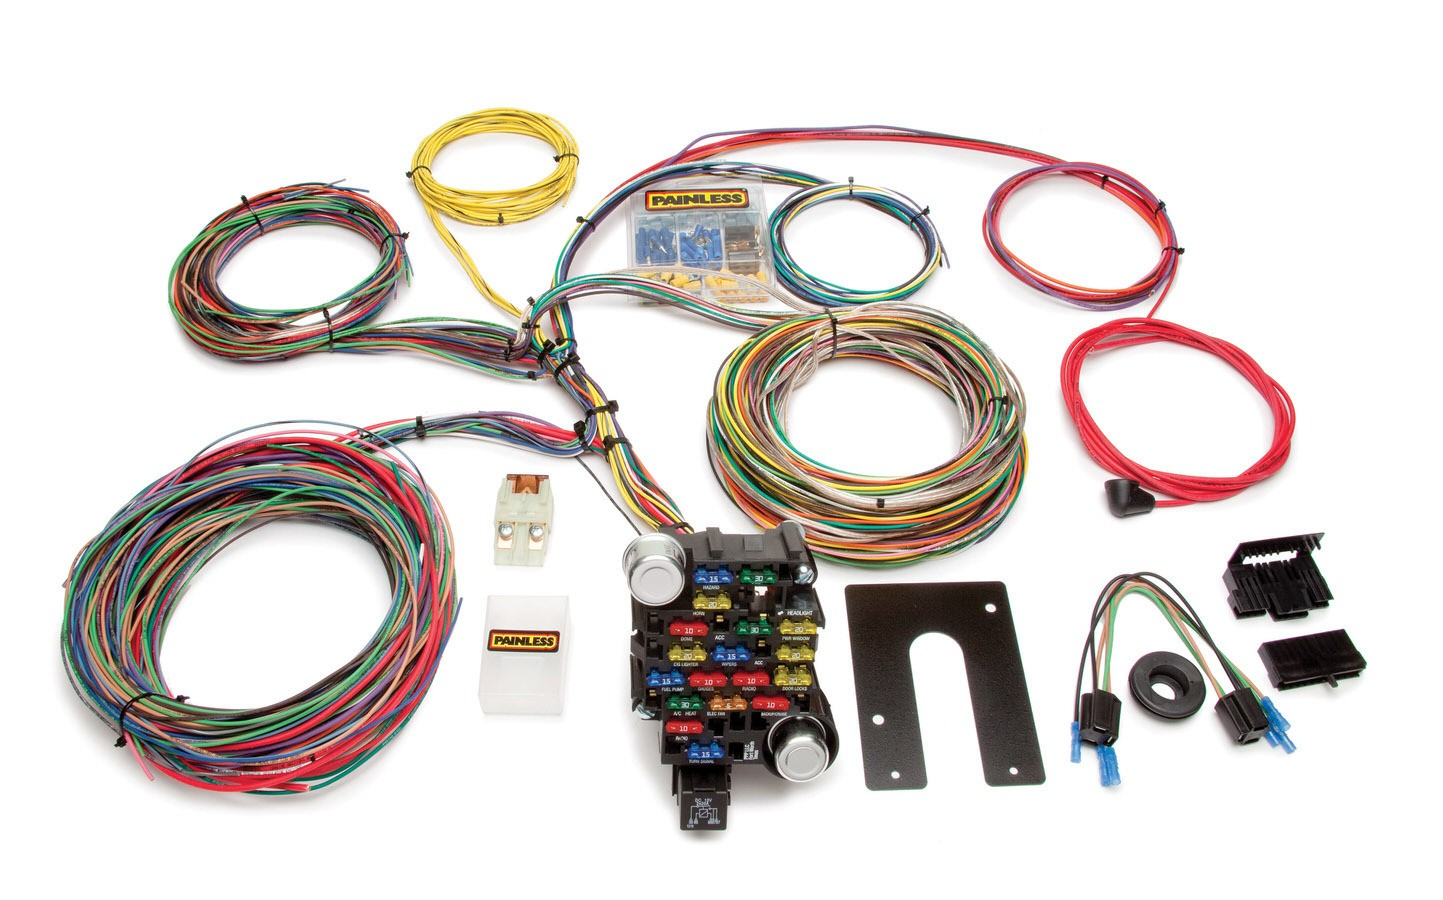 [DIAGRAM_5LK]  Painless Wiring 10202 Car Wiring Harness, Classic-Plus Custo | Gm Automotive Wiring Harness |  | Dan Hellmer Racing Solutions